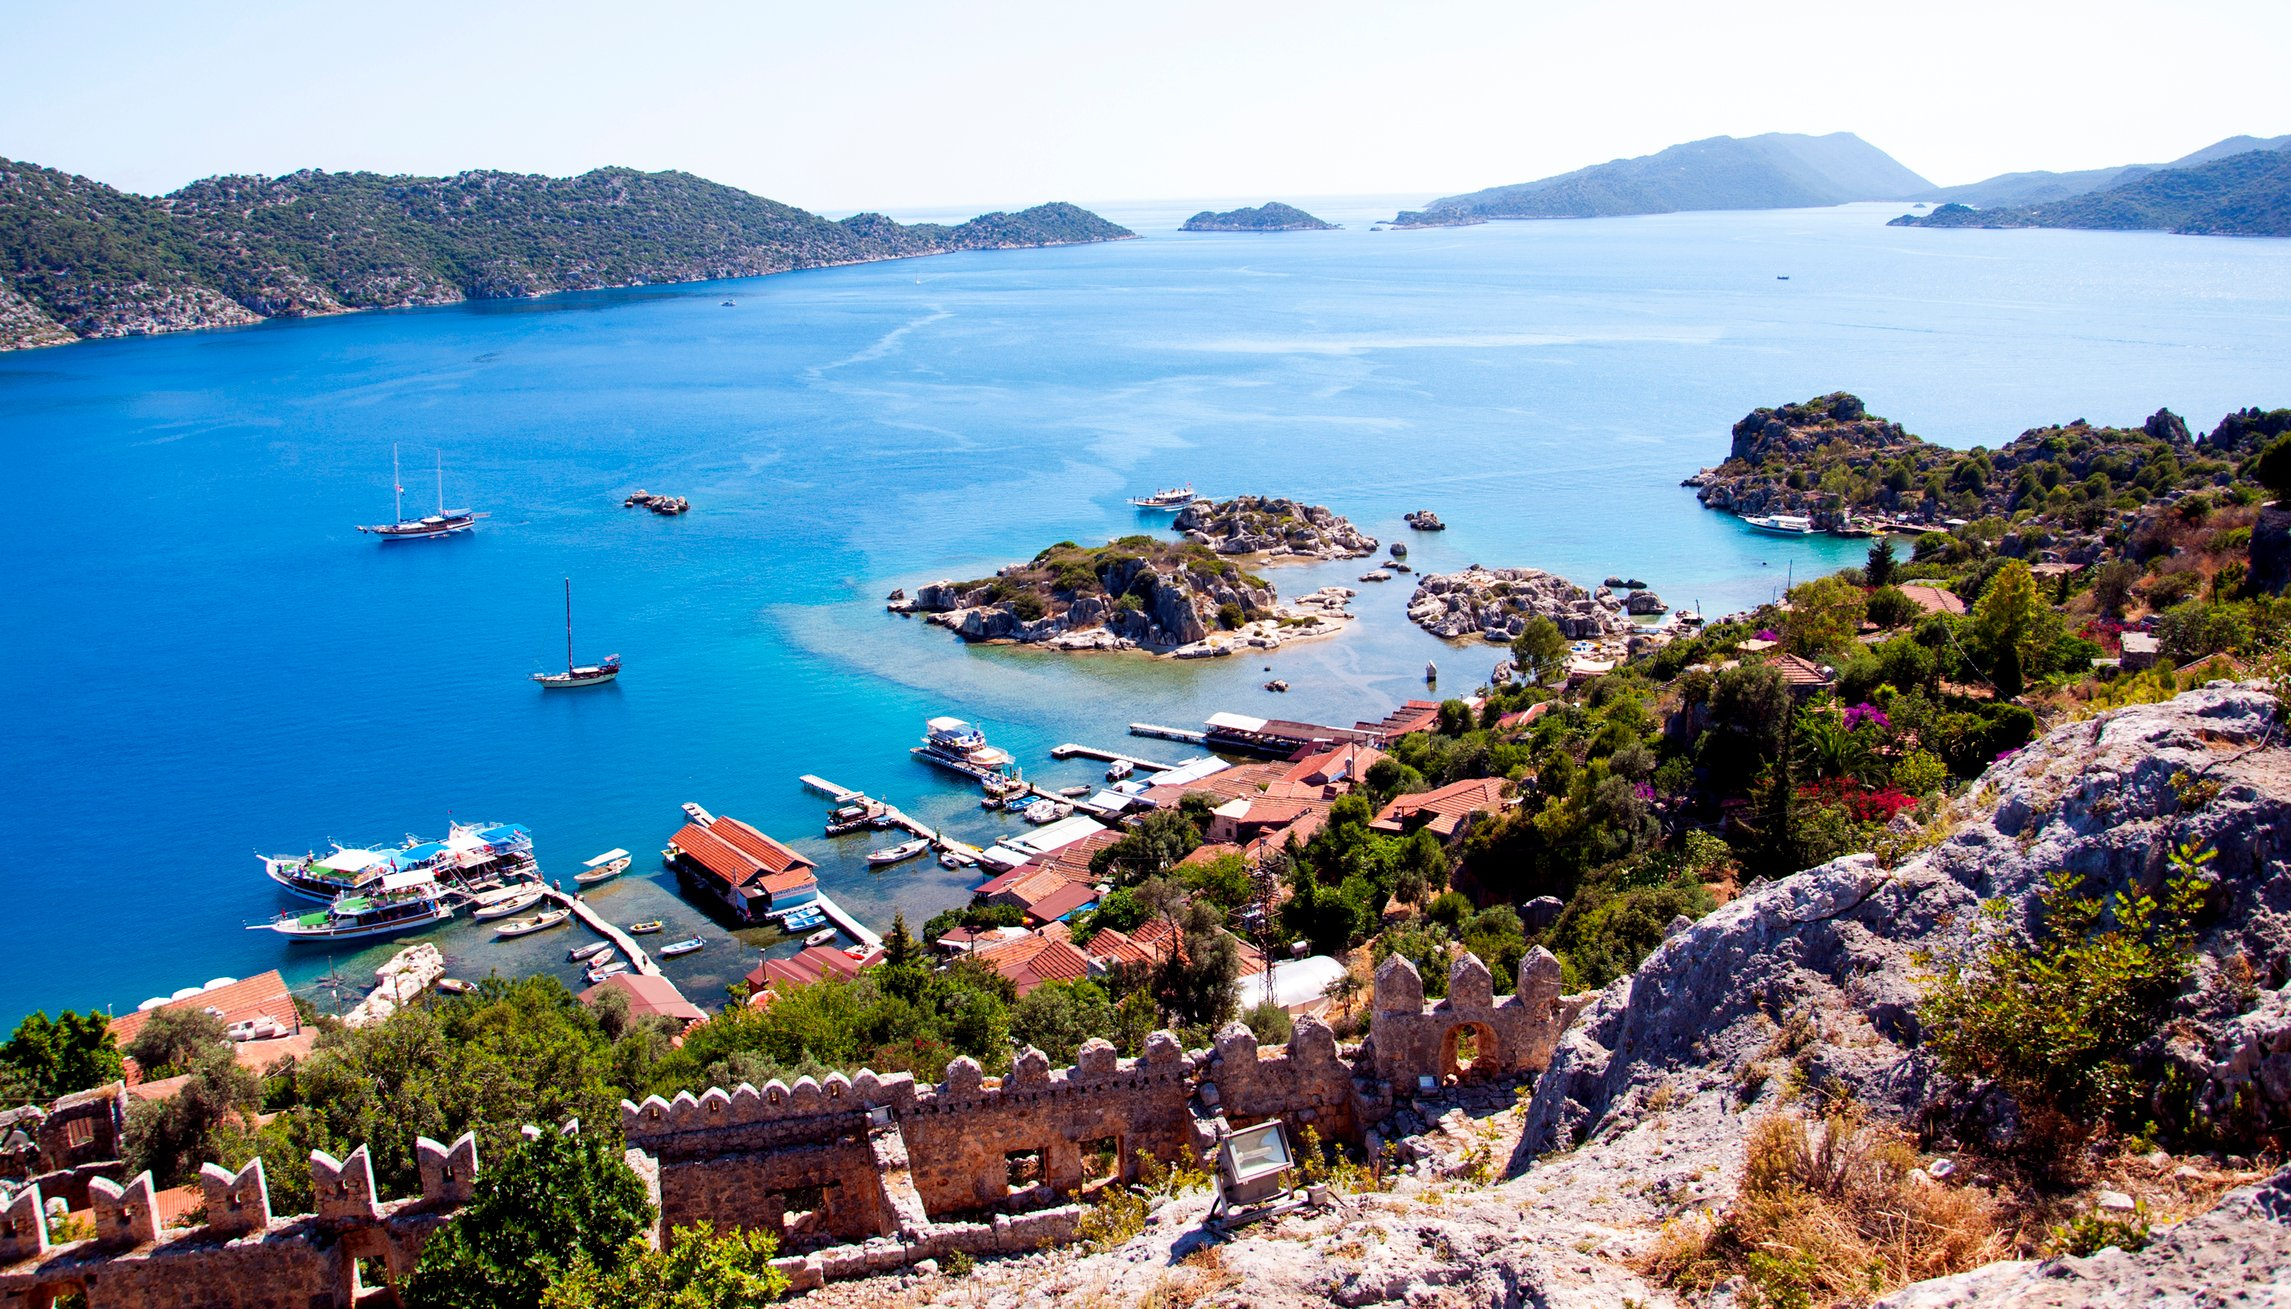 Located between Kaş and Kale on the Mediterranean coast, the ancient village of Kaleköy (Simena) is a great place to stop by. (Saadet Alkan / iStock)